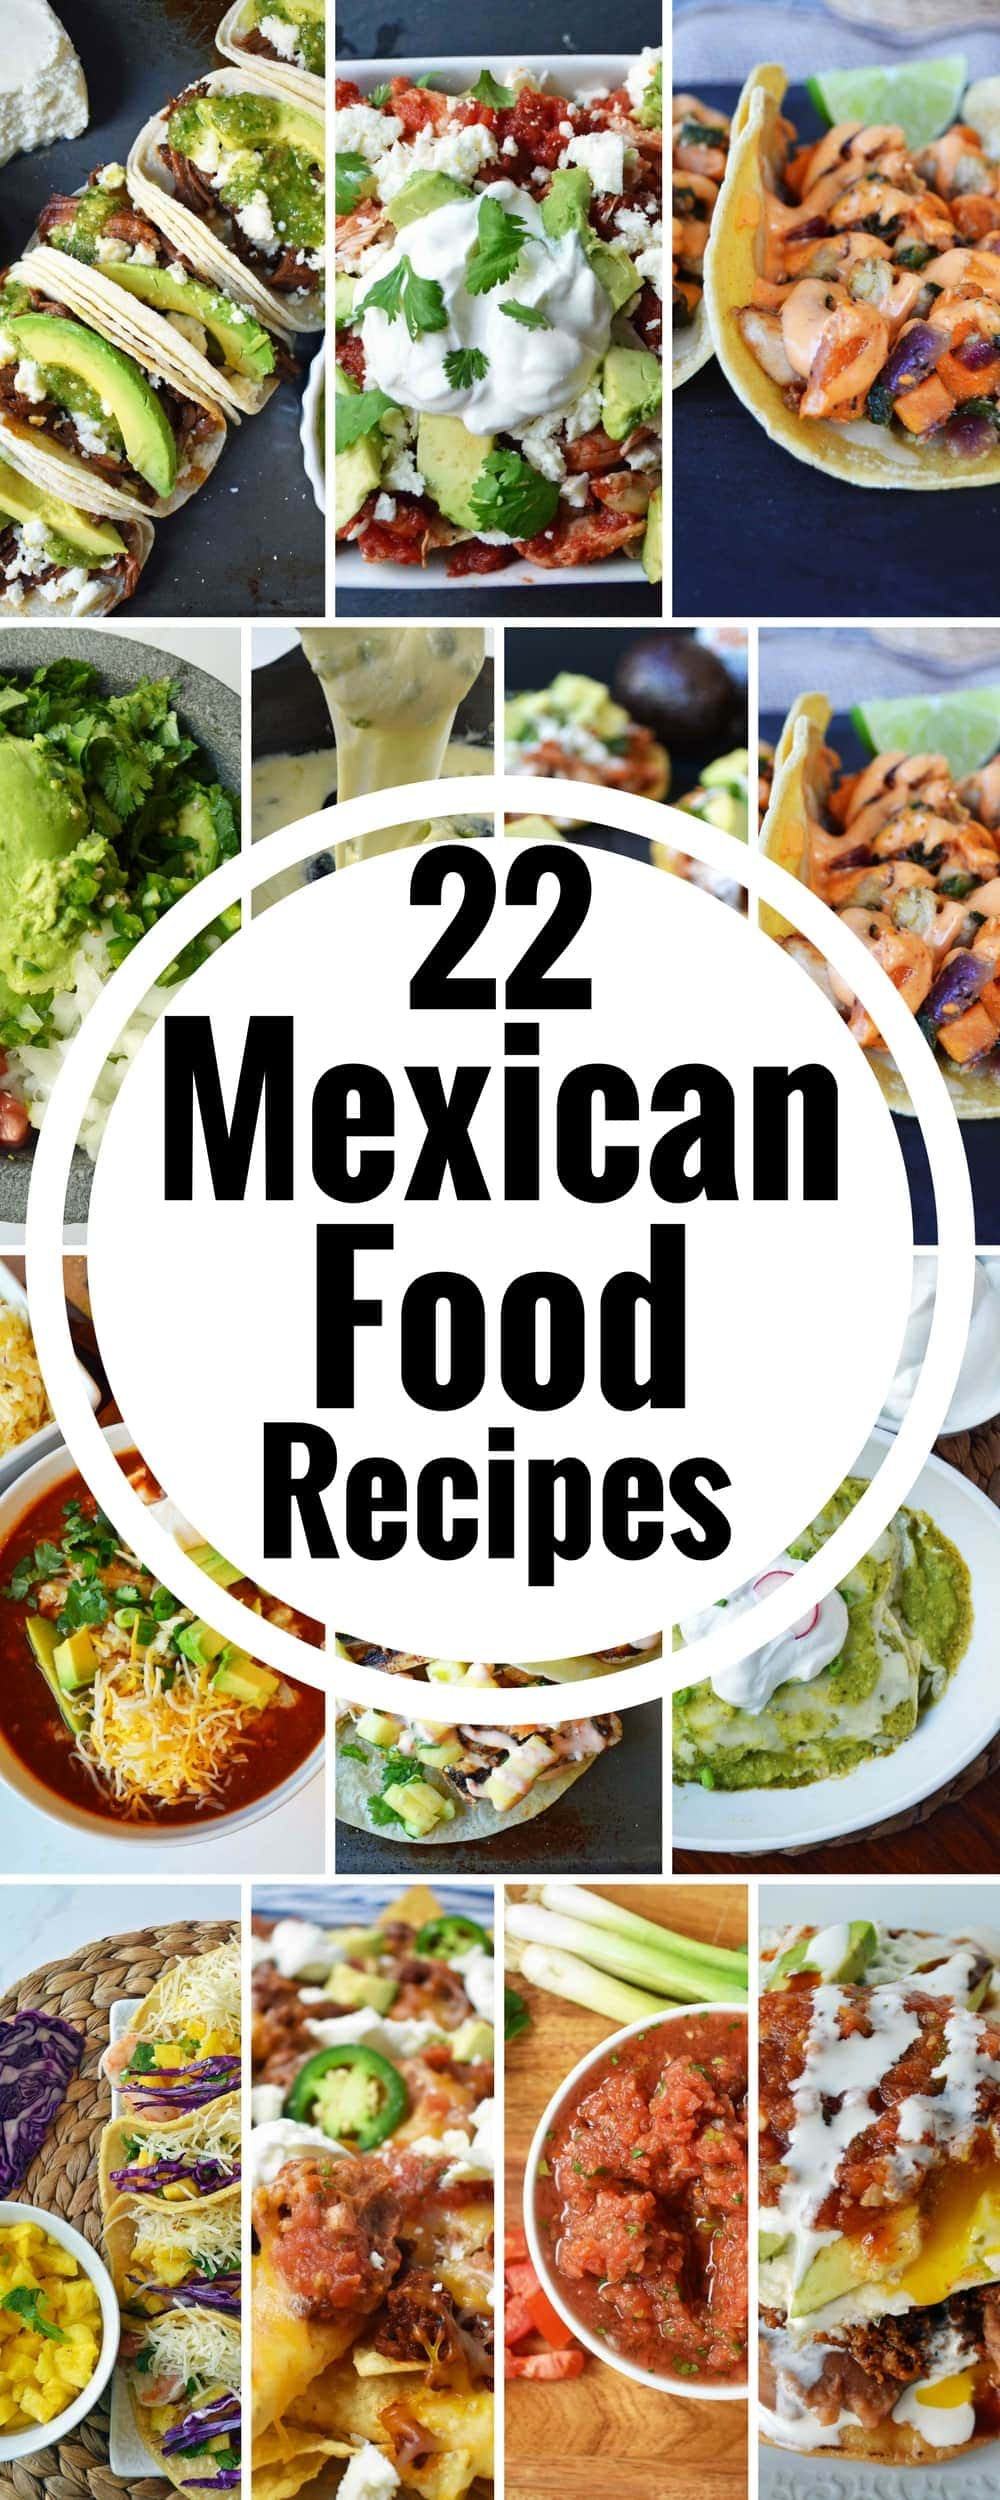 22 Mexican Food Cinco de Mayo Recipes. All of the best authentic Mexican food recipes. www.modernhoney.com #mexican #mexicanfood #cincodemayo #mexicanfoodrecipes #cincodemayorecipes #enchiladas #tacos #tostadas #friedicecream #guacamole